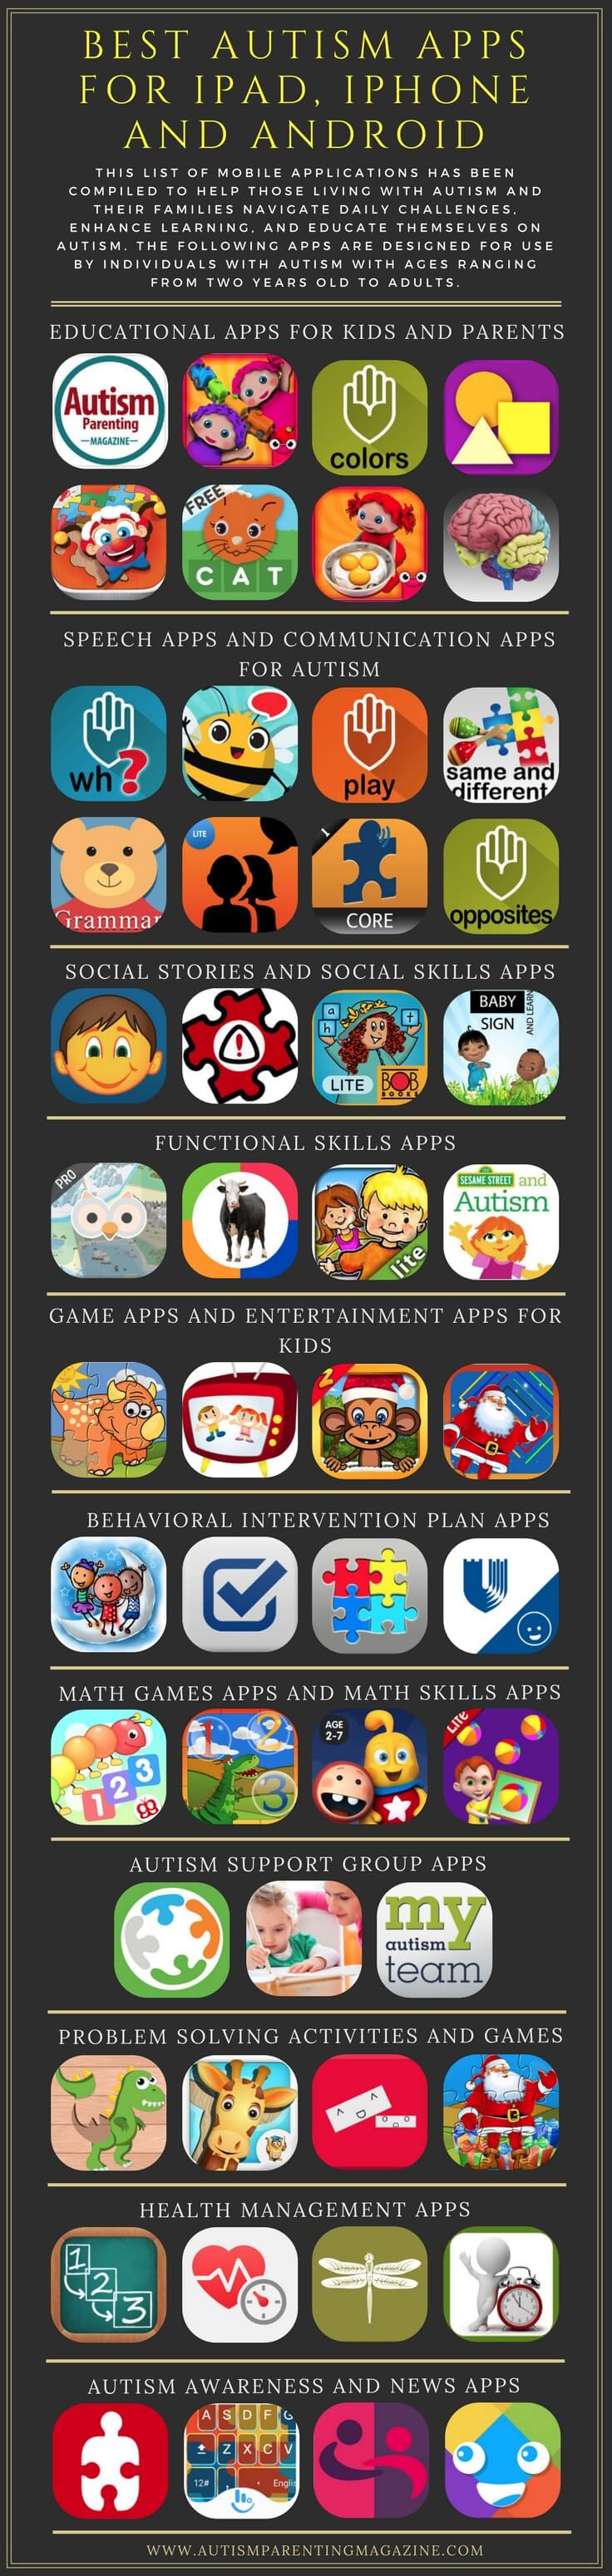 Best Autism Apps For iPad, iPhone and Android http://www.autismparentingmagazine.com/best-autism-apps/